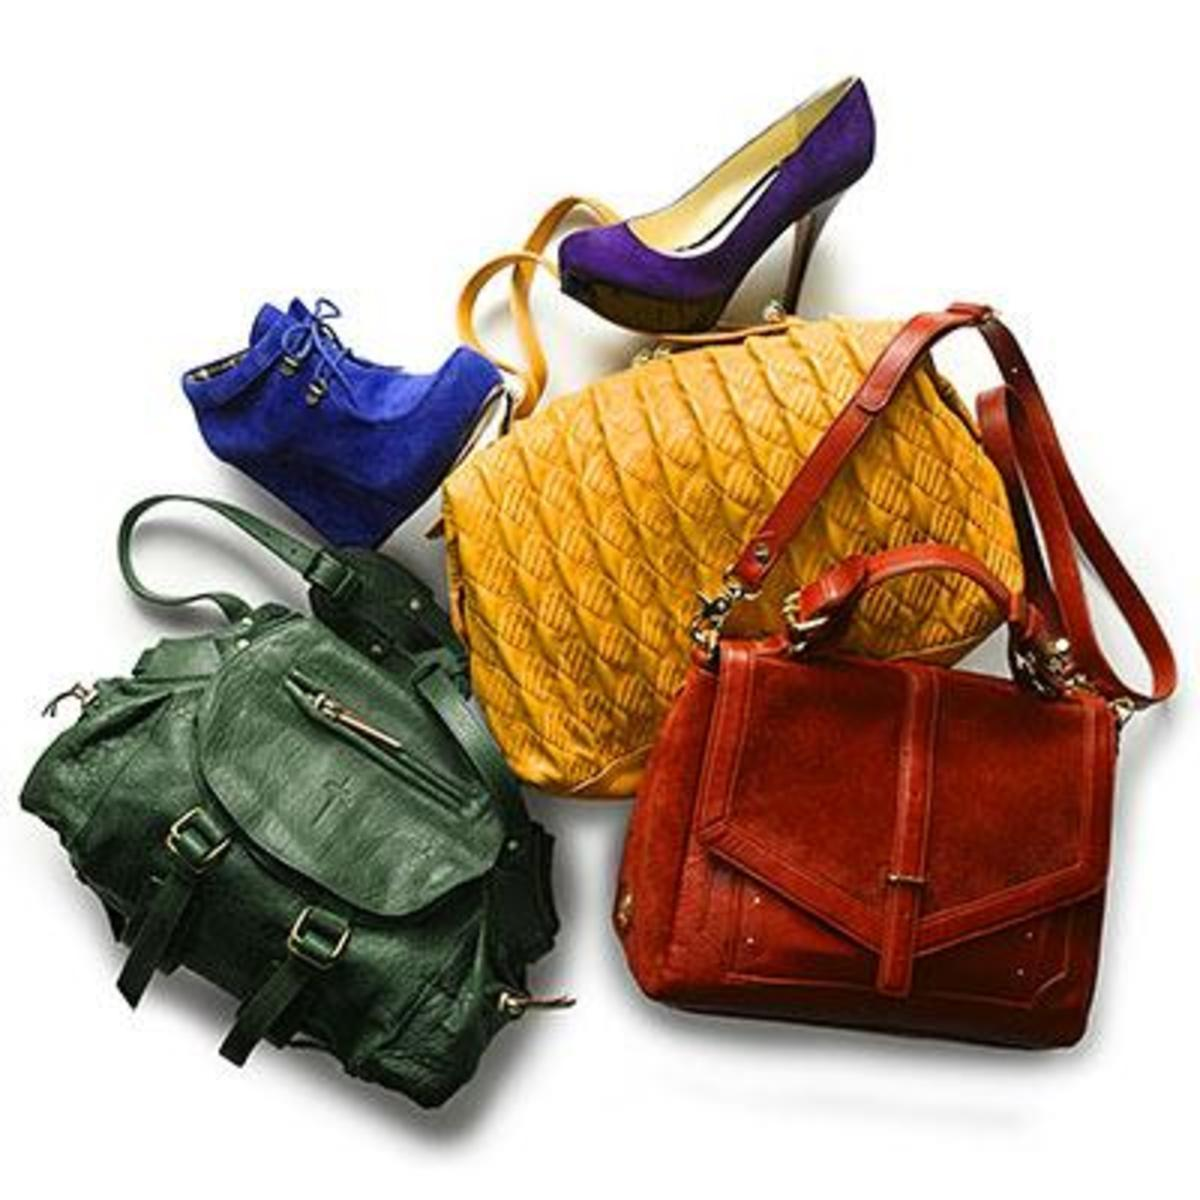 0824-02-bright-bags-400_1